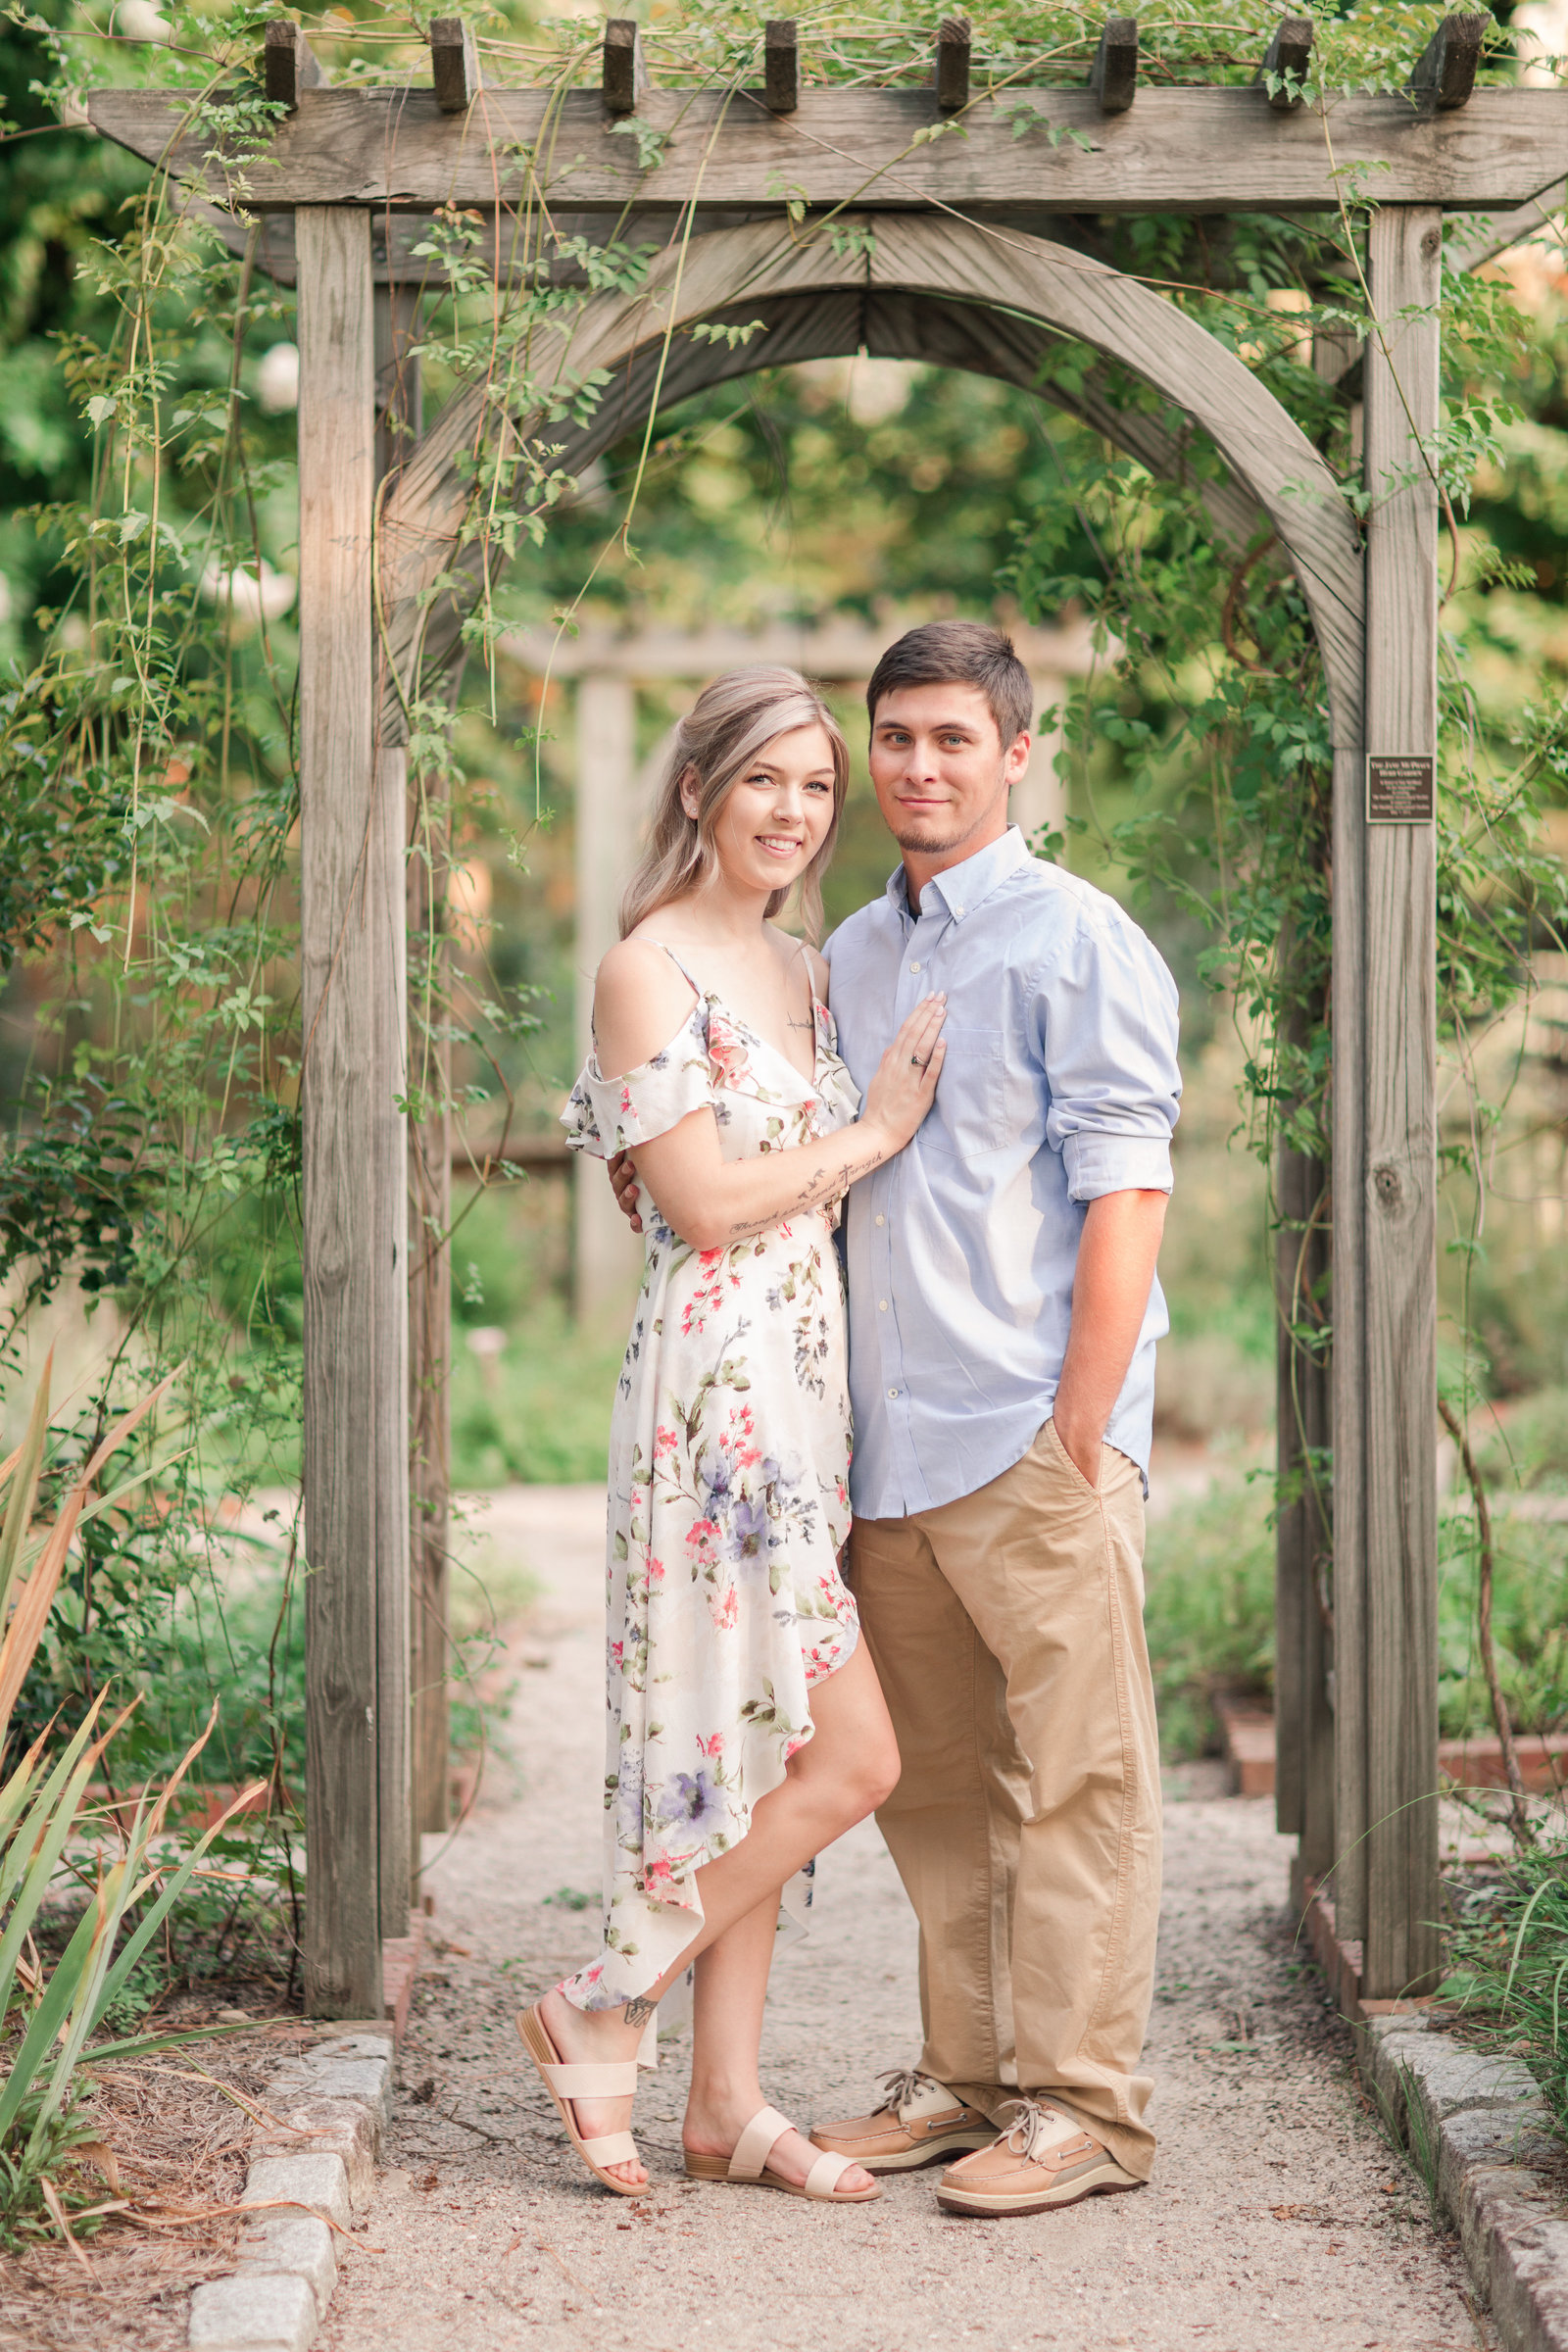 Jennifer B Photography-Sandhills Horticultural Gardens Engagement-Pinehurst NC-Cody and Kayla-2019-0060